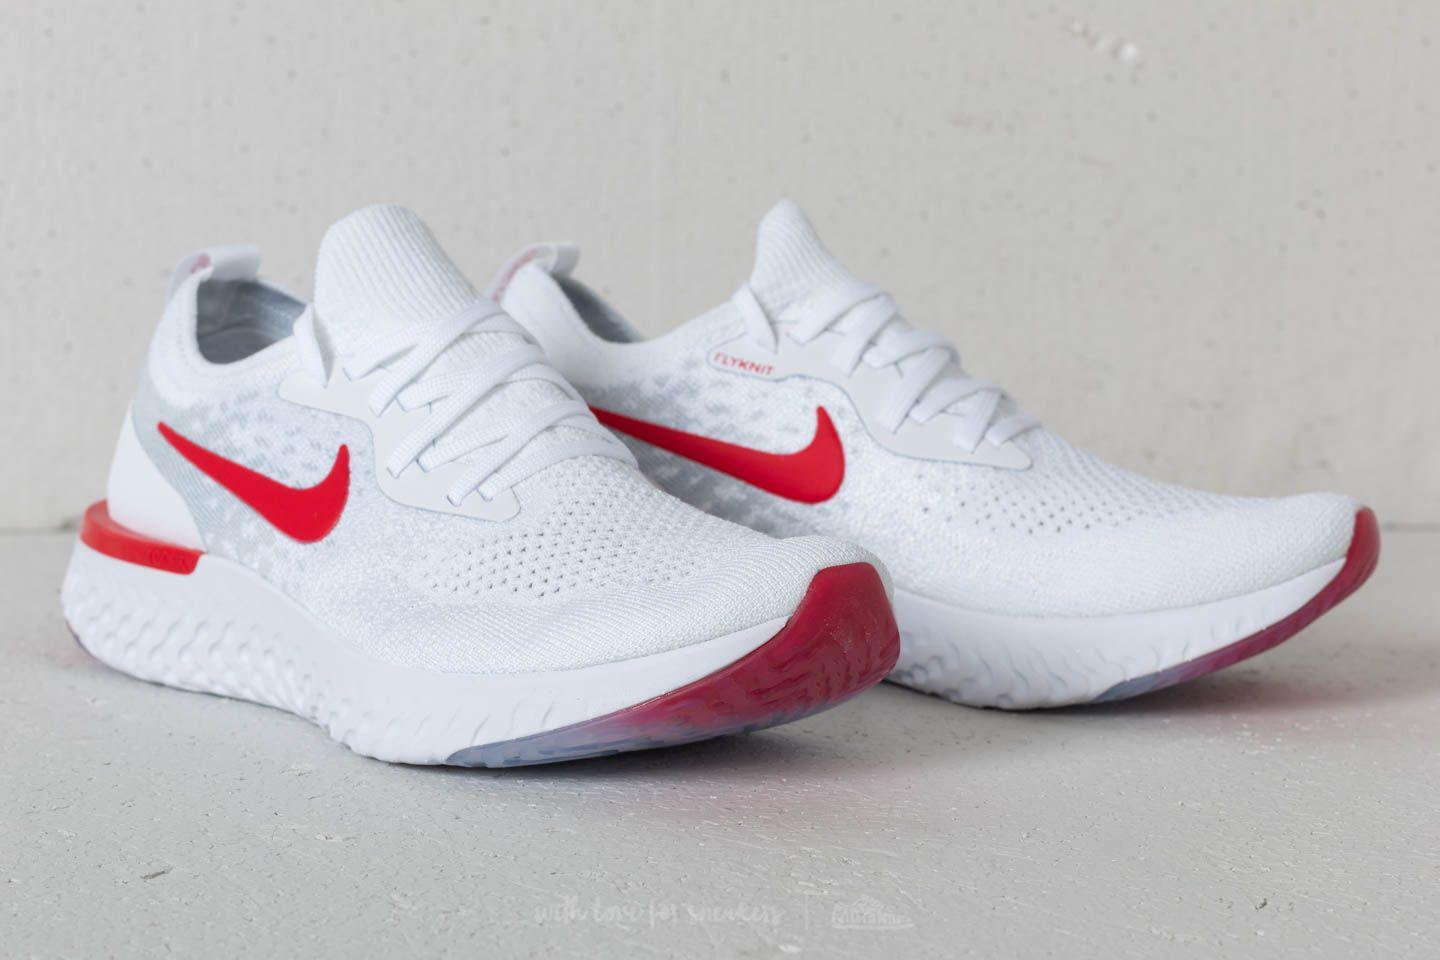 save off 20d24 9b7d3 ... sale nike epic react flyknit gs white university red for men lyst. view  fullscreen bcf1f